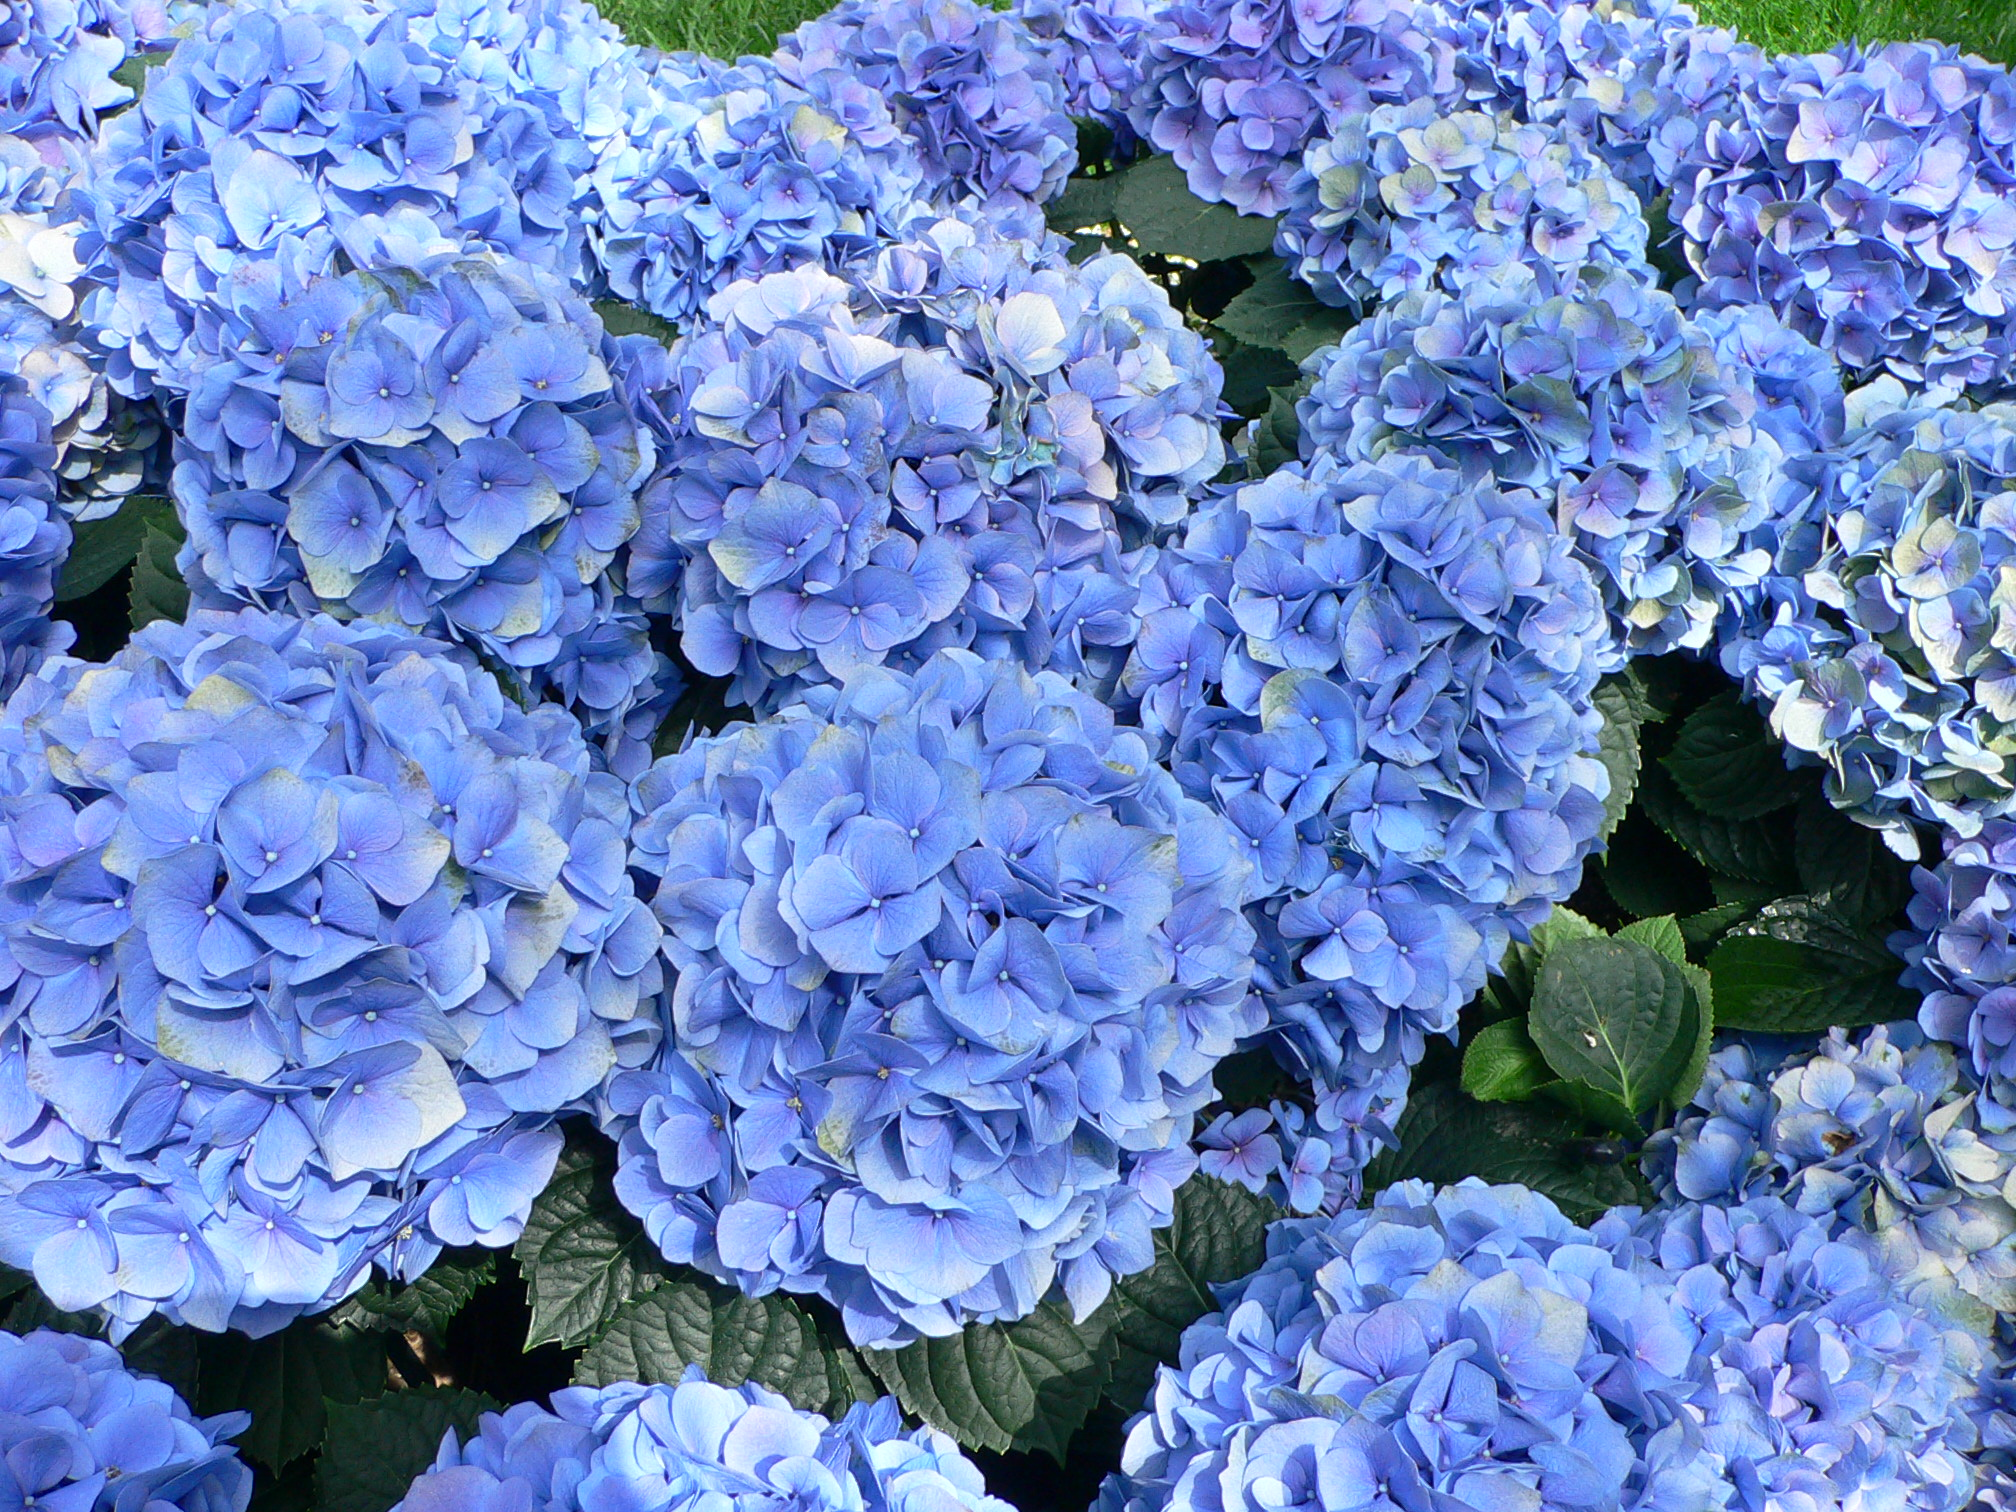 Hydrangeas are big and colorful and can thrive in just about any soil.